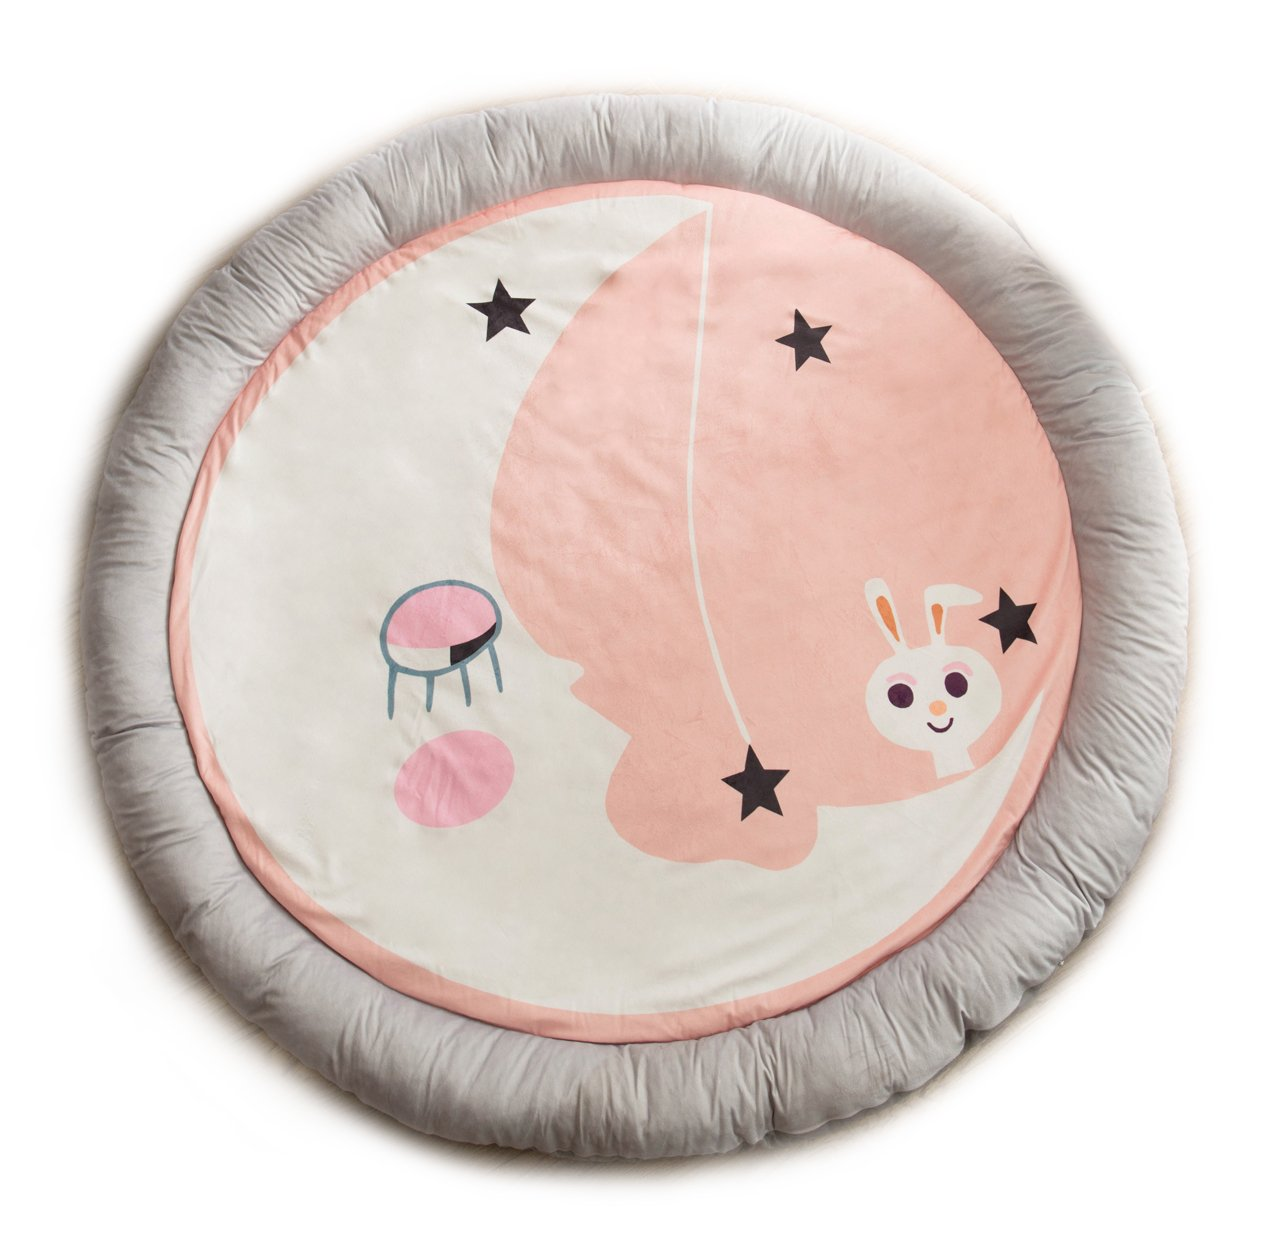 HugeHug Cartoon Soft Fenced Kids Play Mat Floor Area Rugs for Bed and Game Rooms, Reading Nook, Video Games or Watching TV, Thick Non-Toxic Softer Fluffy Round 60 inches for Babies Girls Boys(Rabbit)